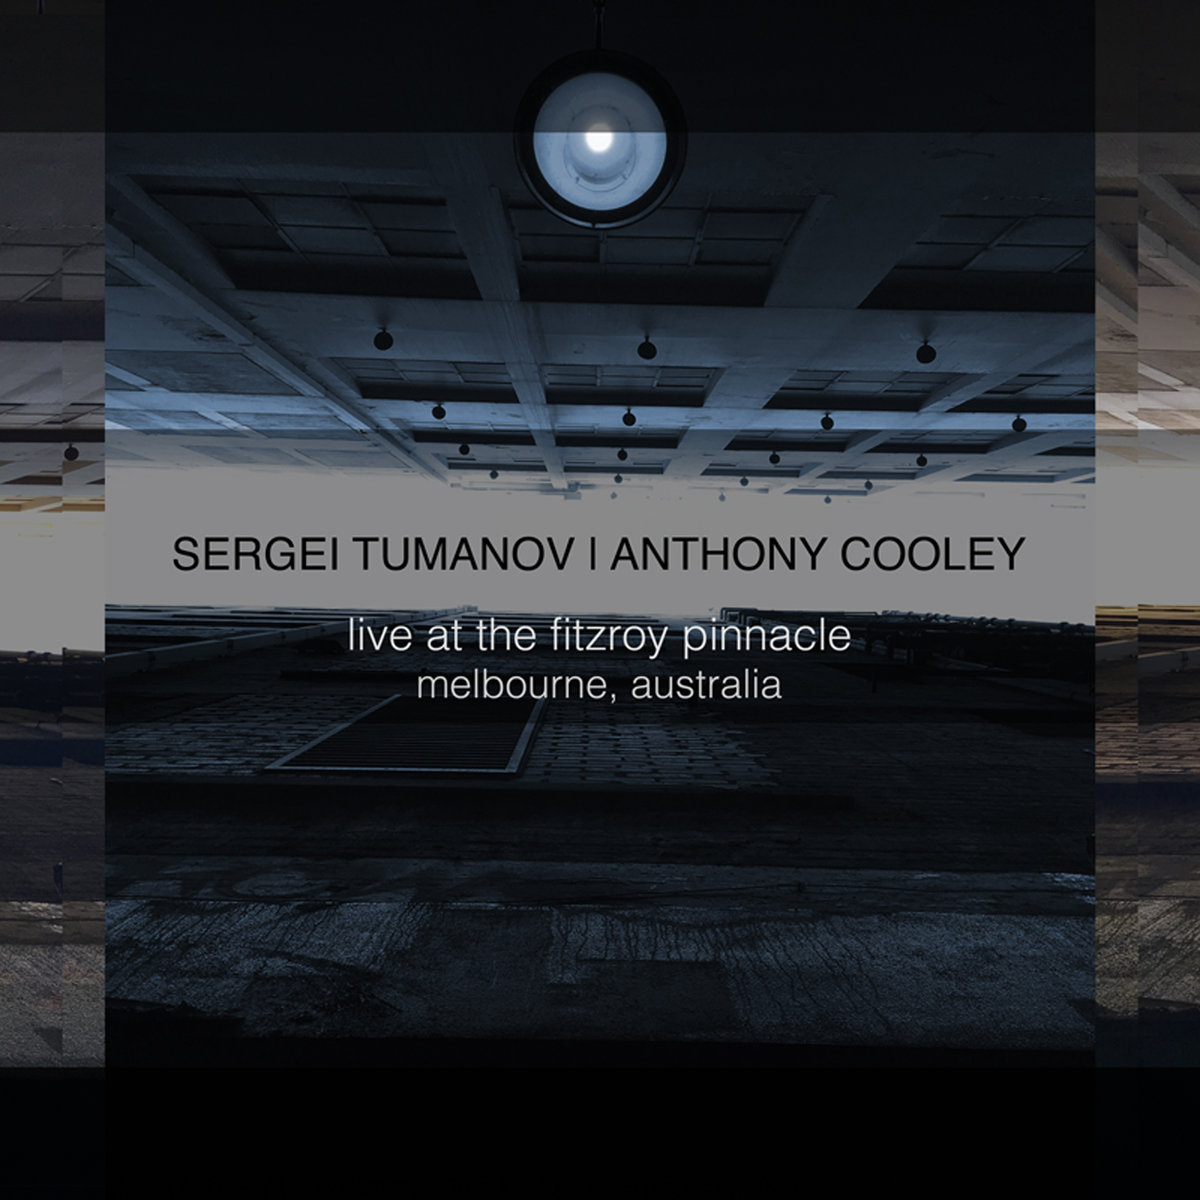 live At The Fitzroy Pinnacle by Sergei Tumanov and Anthony Cooley